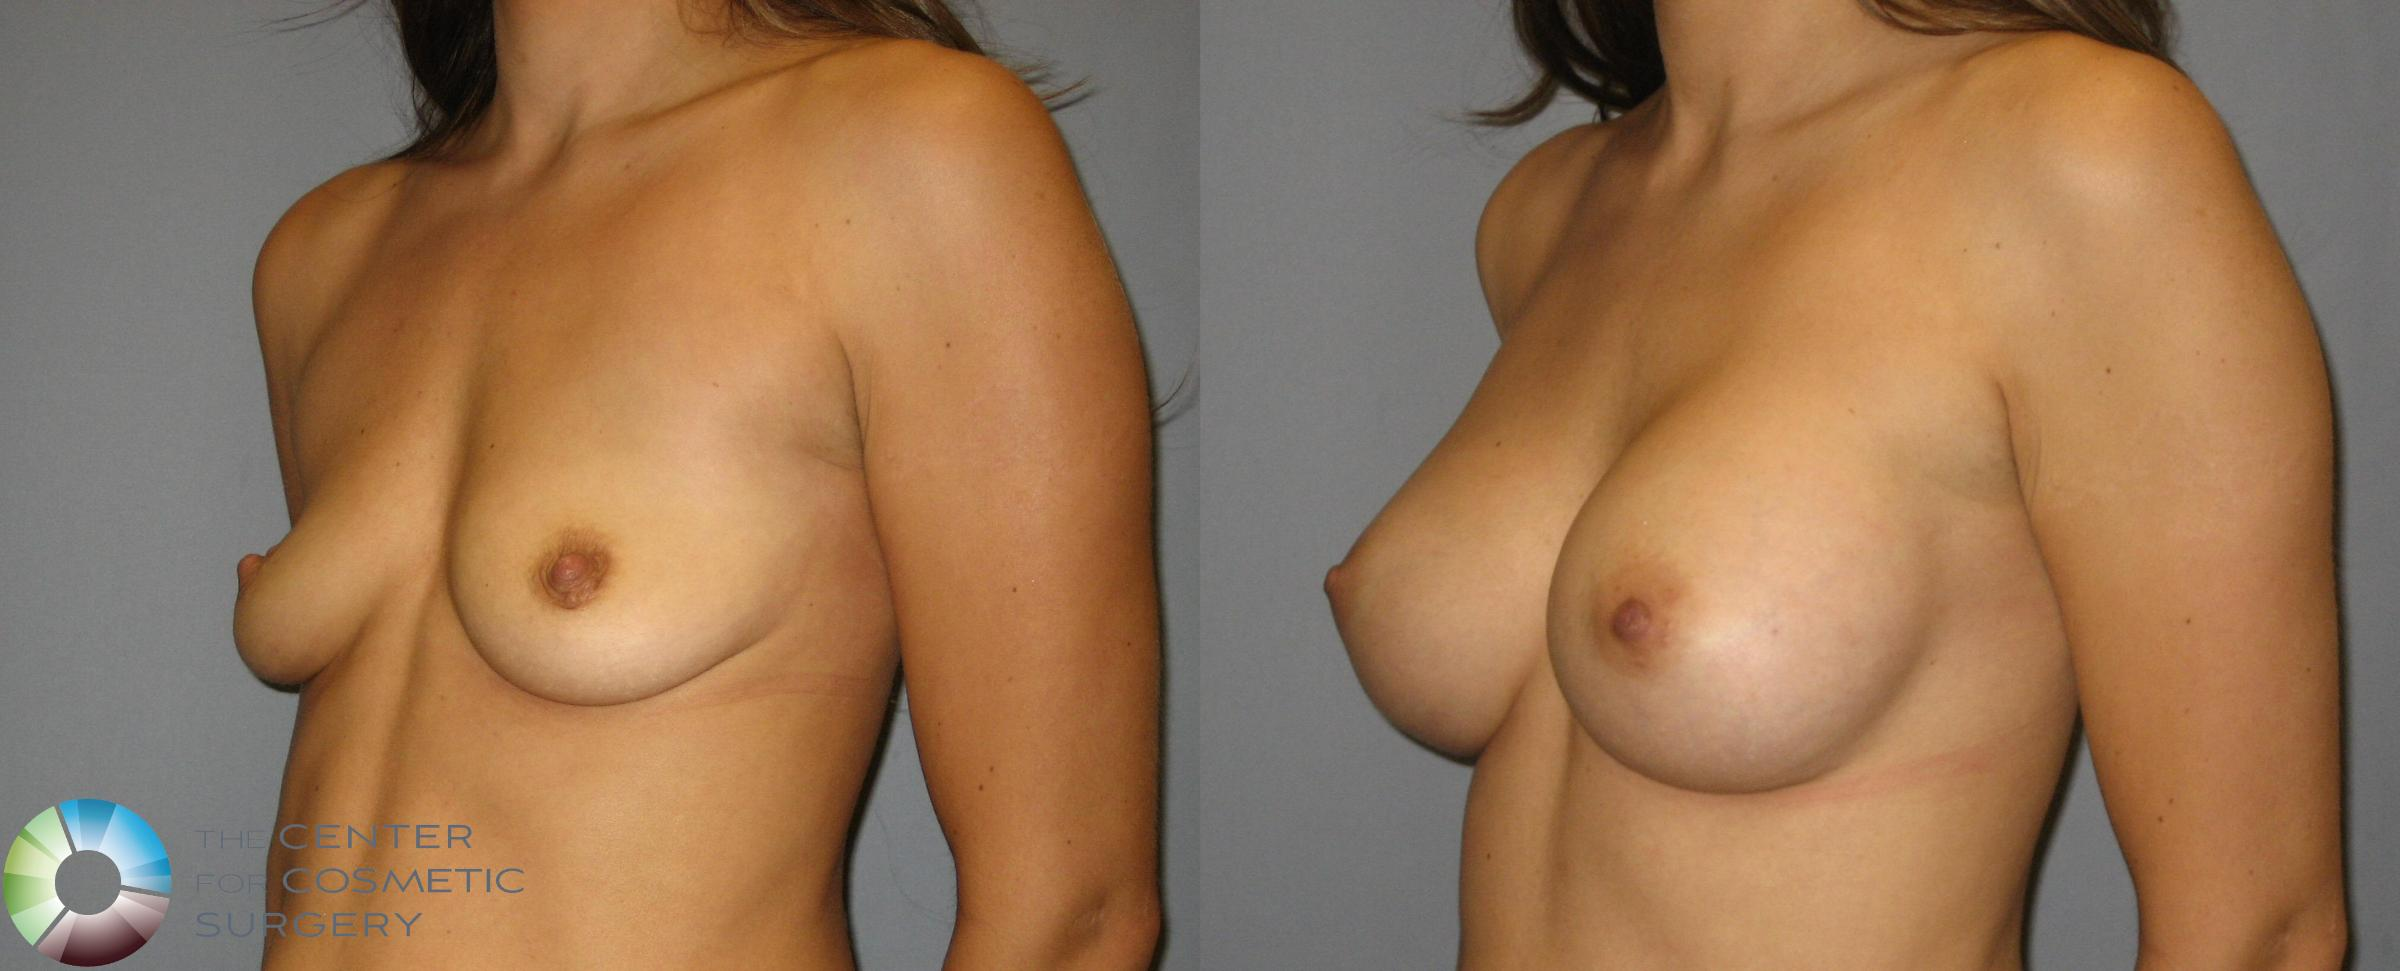 Breast Augmentation Case 357 Before & After View #2 | Golden, CO | The Center for Cosmetic Surgery